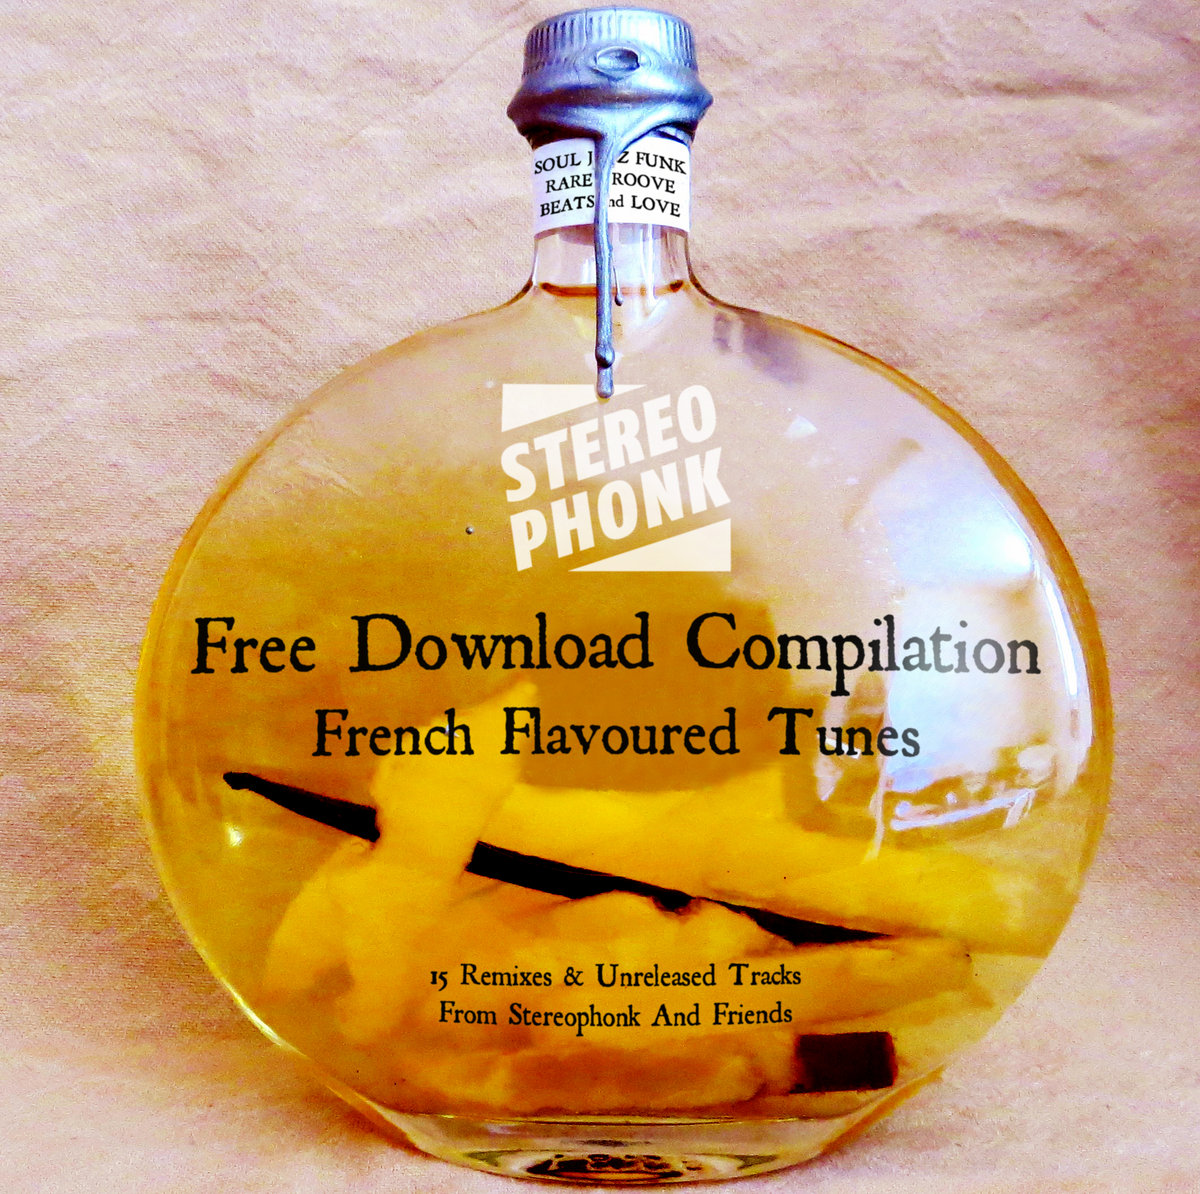 stereophonk_frenchflavouredtunes